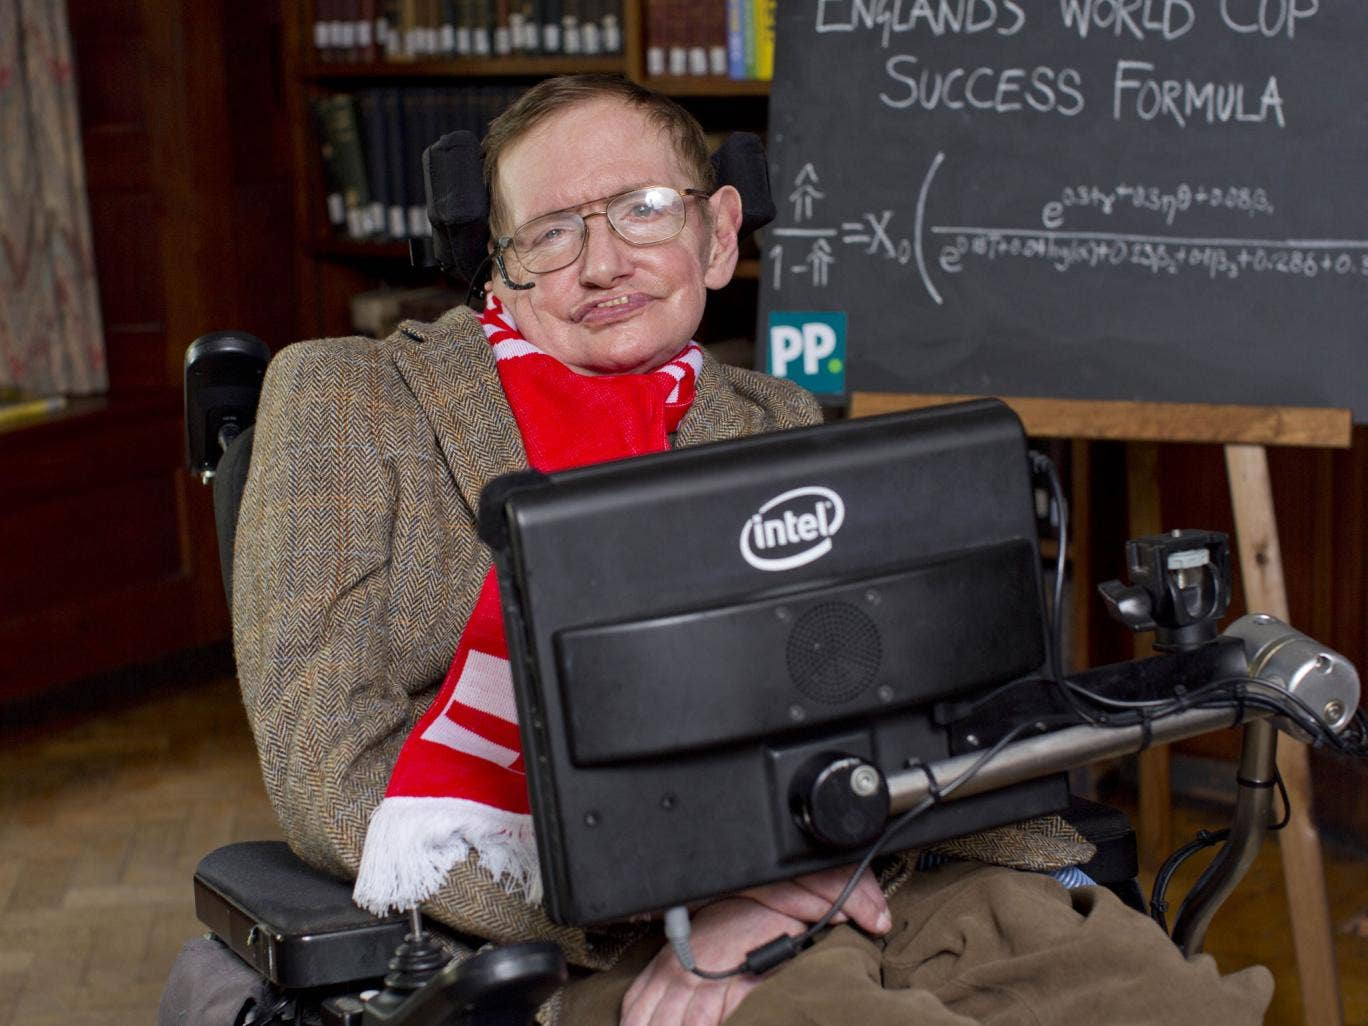 Professor Stepehen Hawking has analysed data from every World Cup since 1966